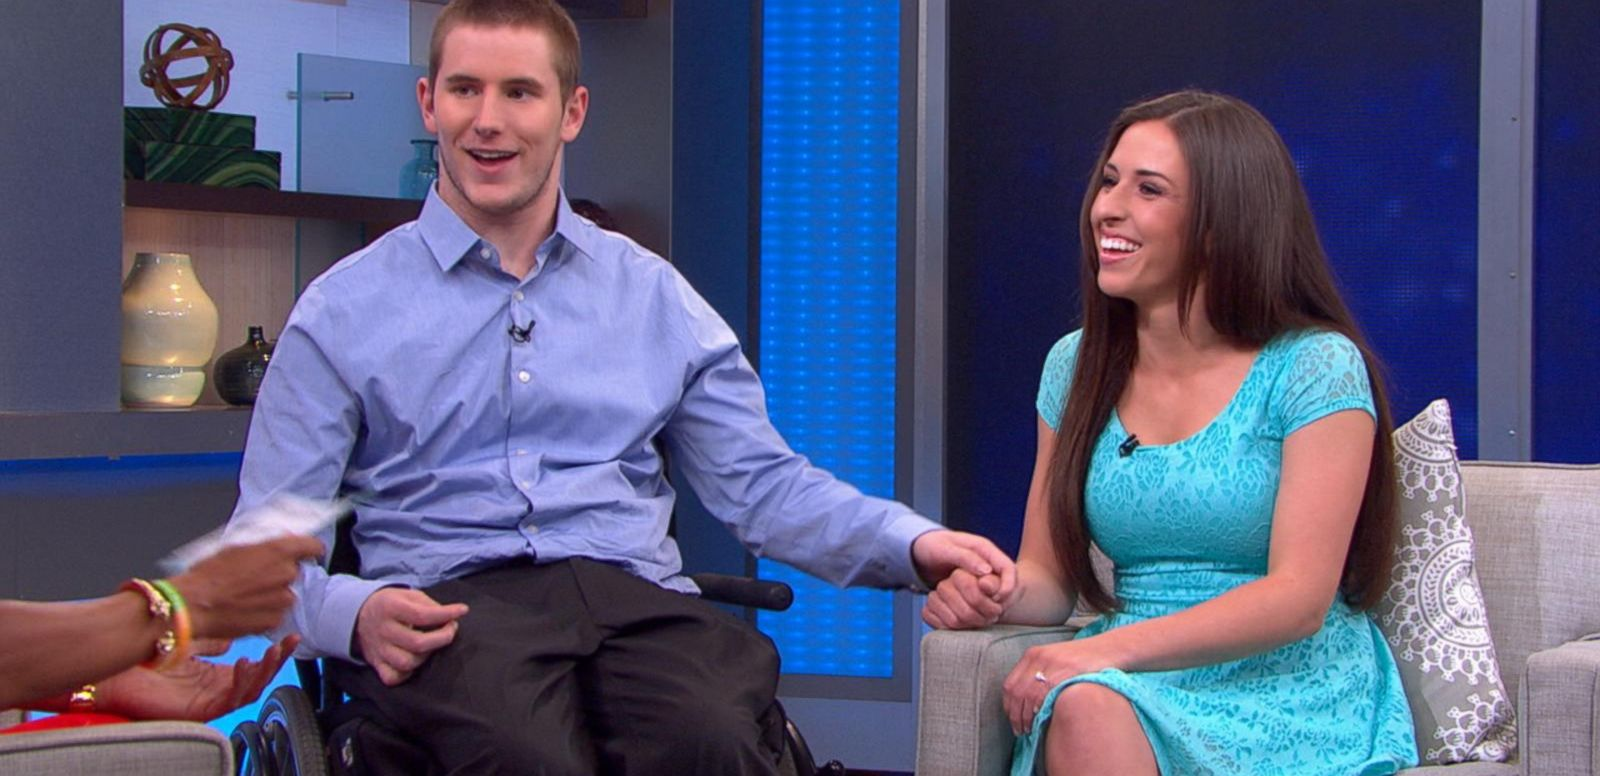 VIDEO: Injured Student Walks at Graduation for the 1st Time in 4 Years